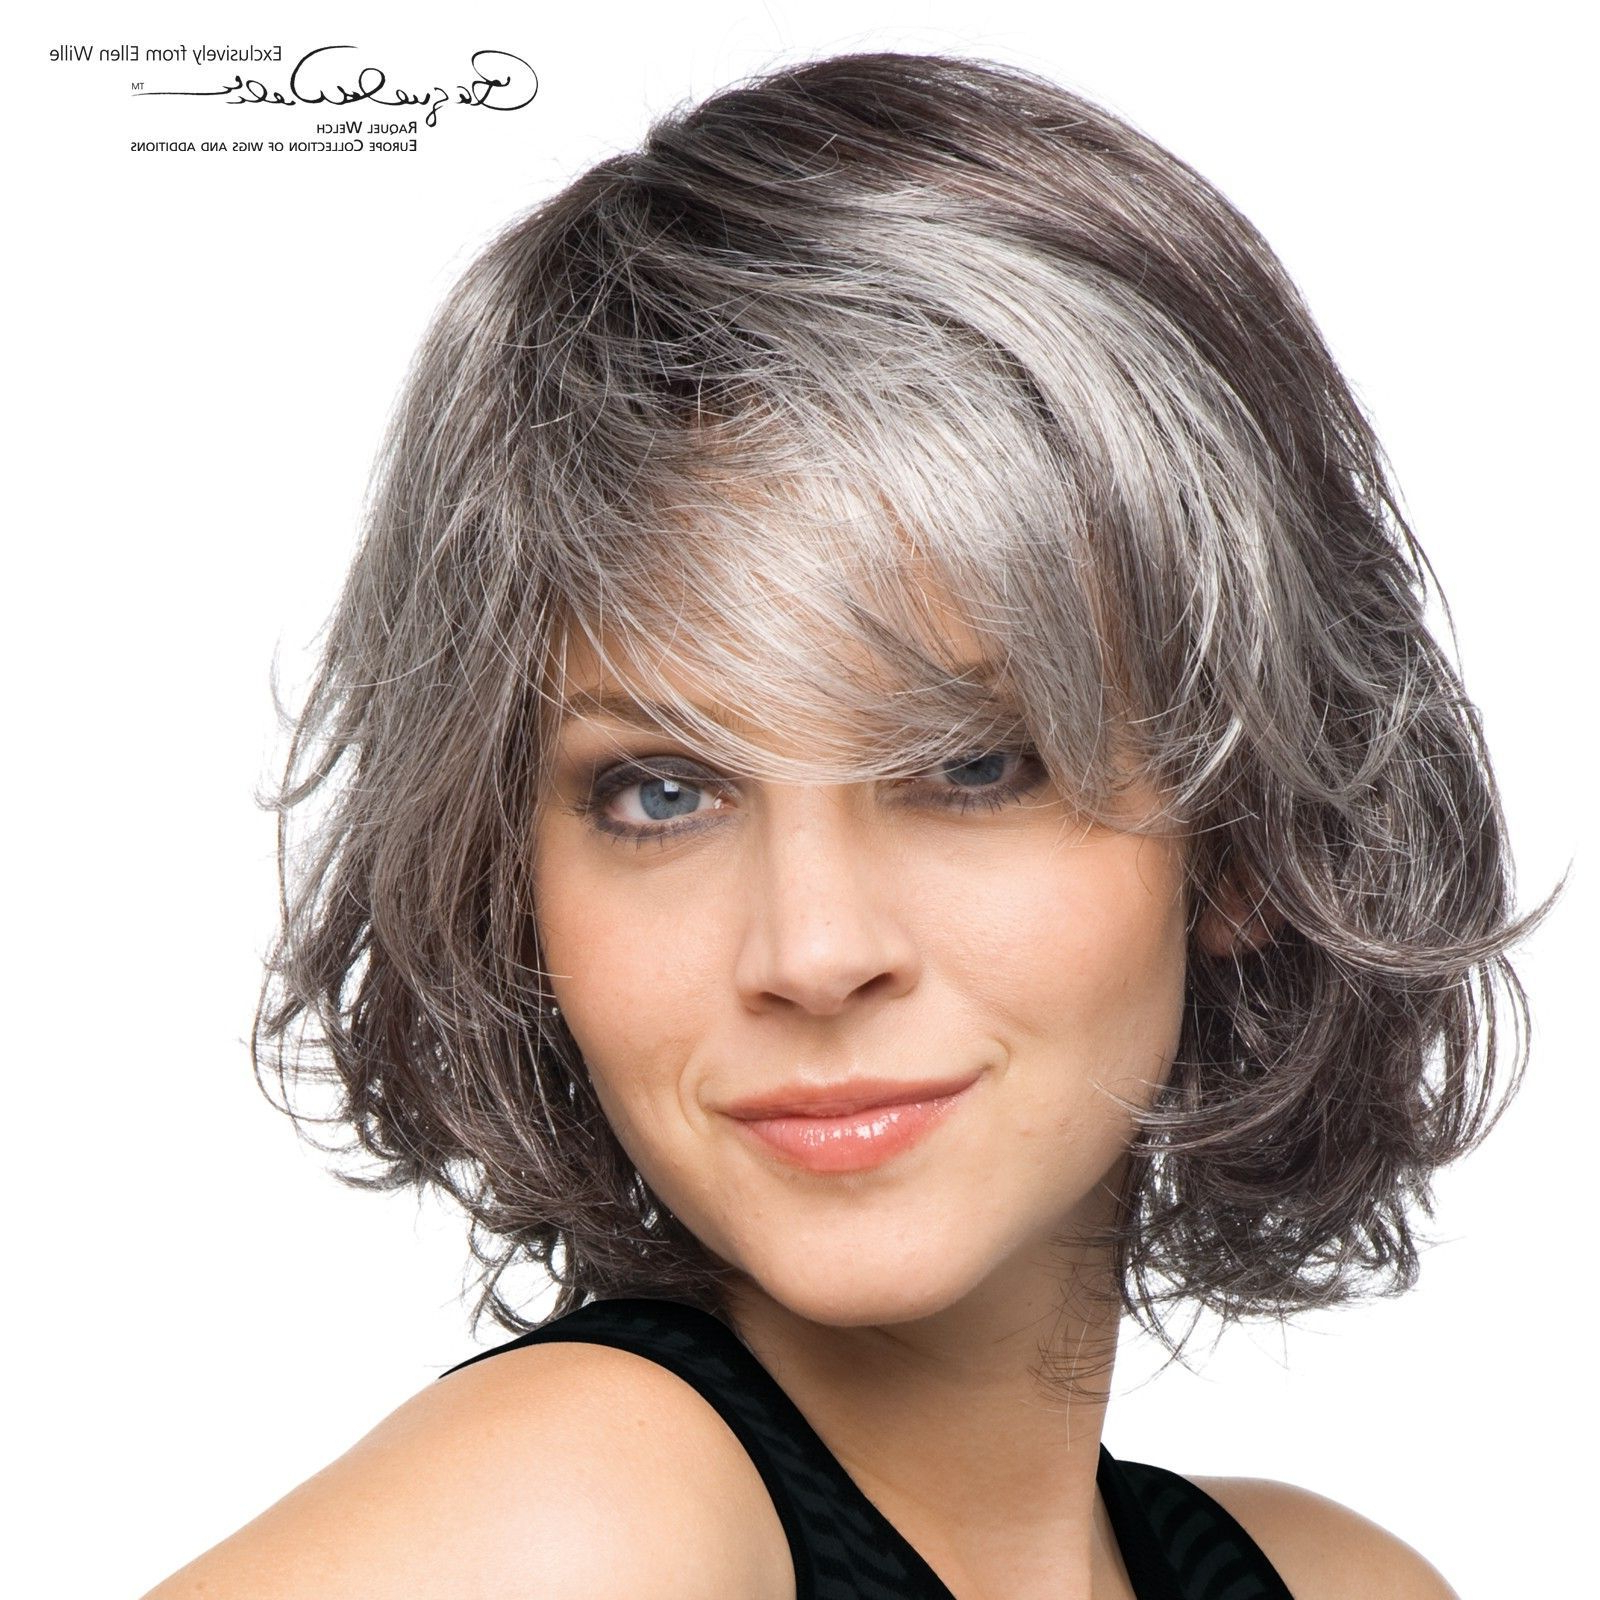 Image Result For Short Hair Styles For Women Over 50 Gray Hair Regarding Famous Medium Haircuts For Women With Grey Hair (Gallery 19 of 20)